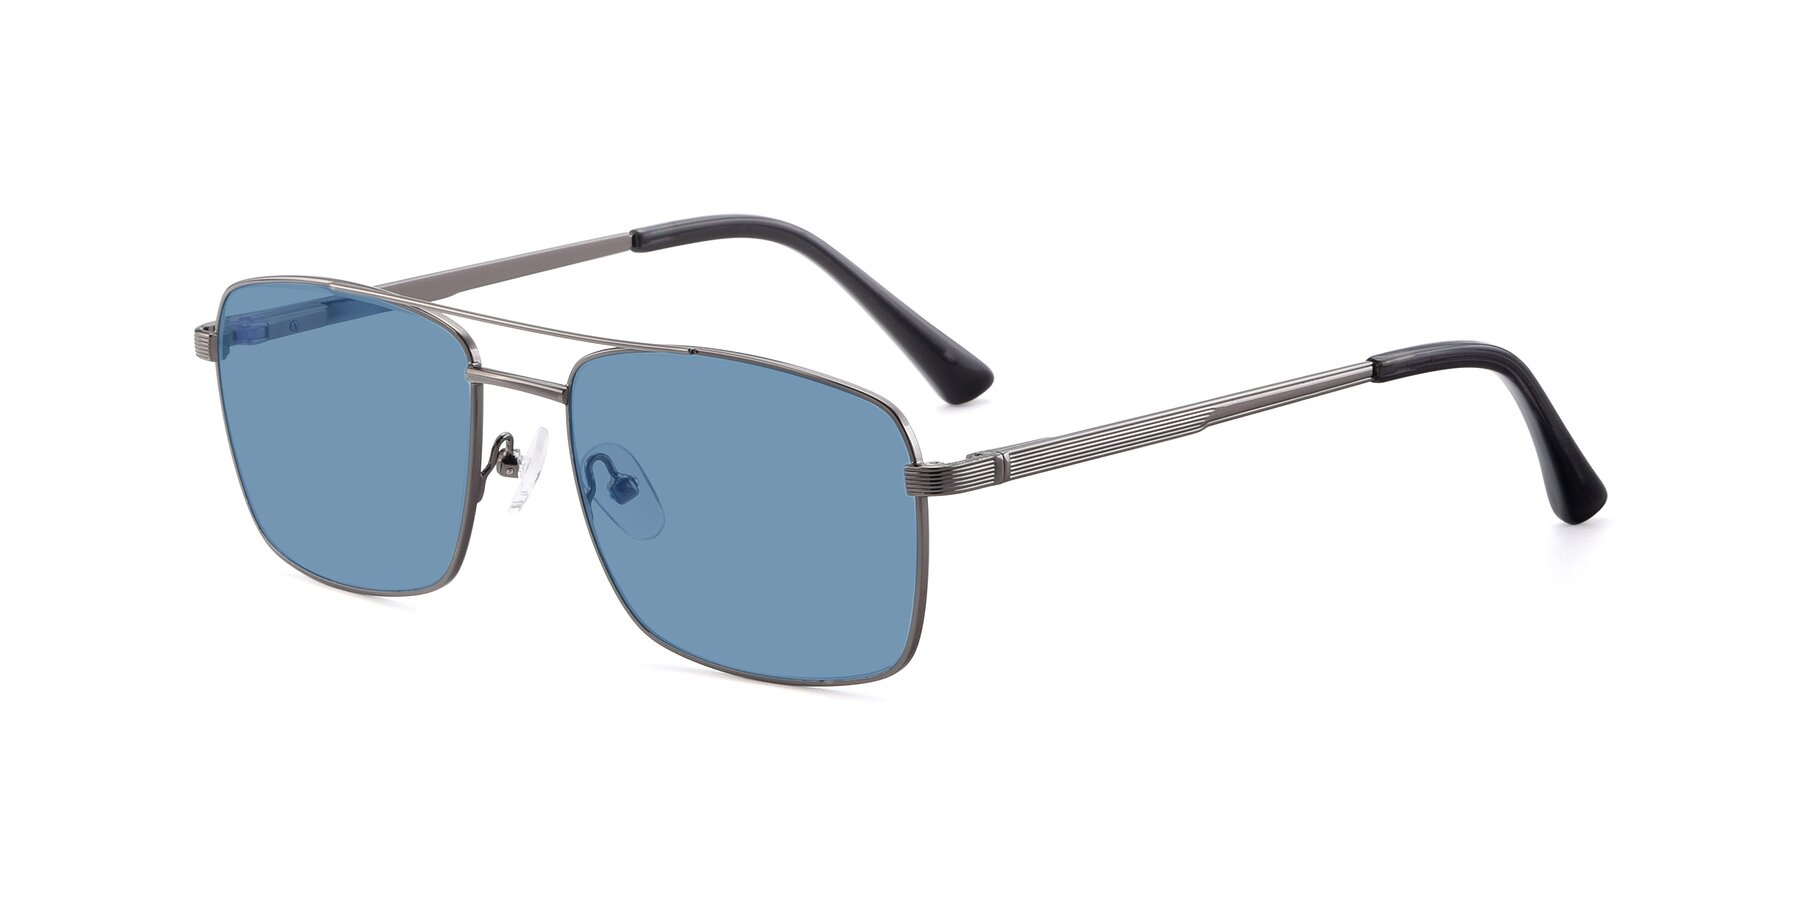 Angle of 9469 in Gun with Medium Blue Tinted Lenses